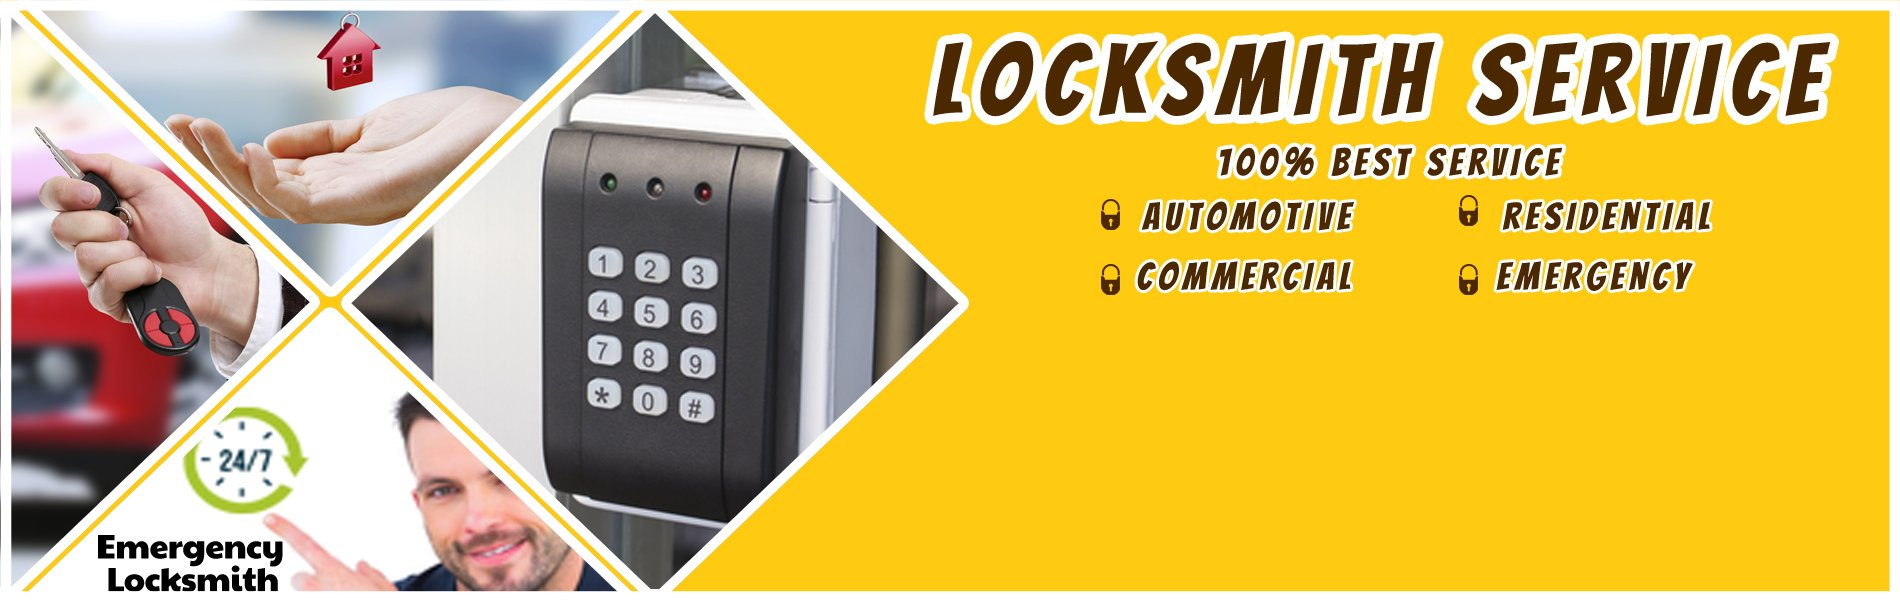 Expert Locksmith Store Columbus, OH 614-504-2022